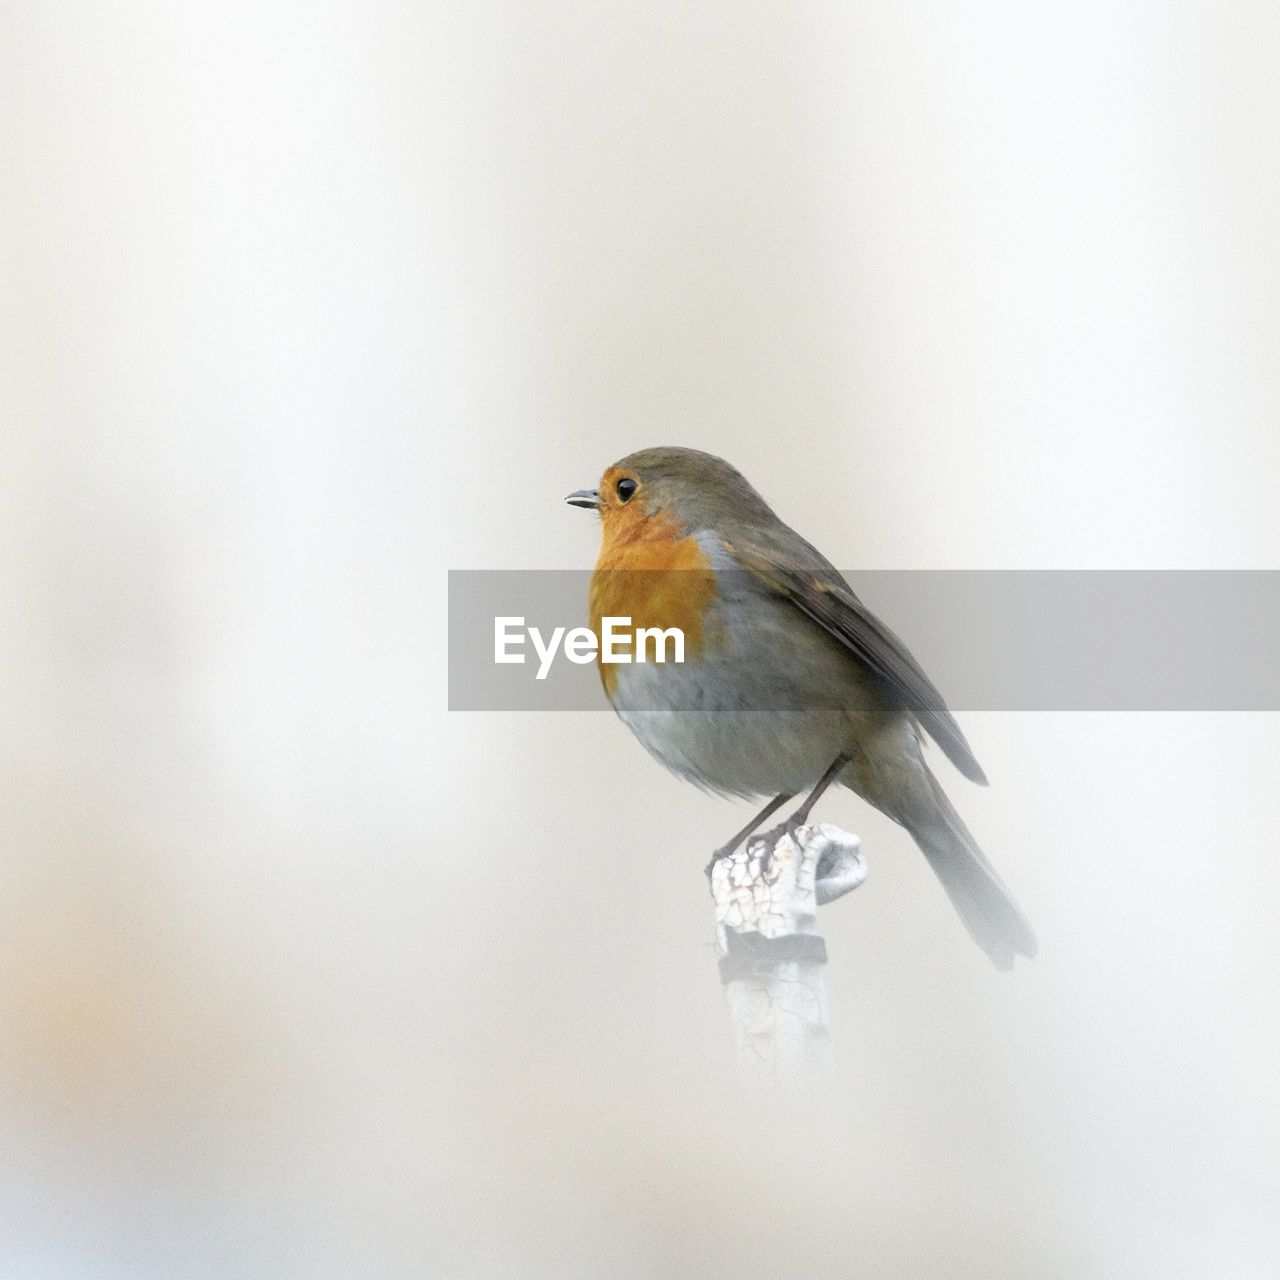 bird, animal themes, animal, vertebrate, one animal, animal wildlife, animals in the wild, perching, copy space, no people, day, robin, outdoors, close-up, nature, focus on foreground, full length, looking, looking away, beauty in nature